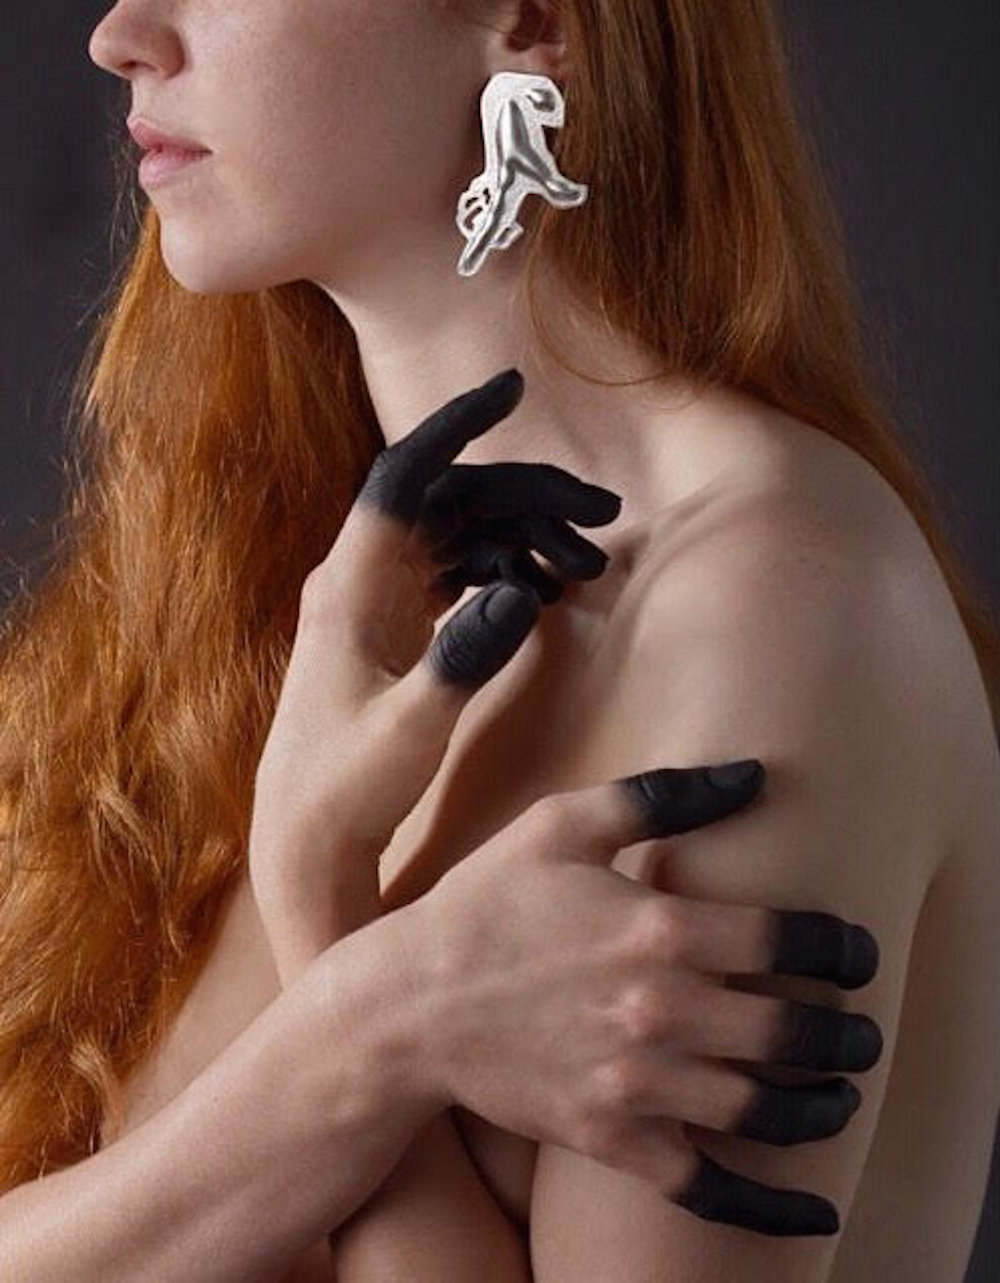 Gina Burgess Jewellery - Dancer's Hand Earrings.jpg